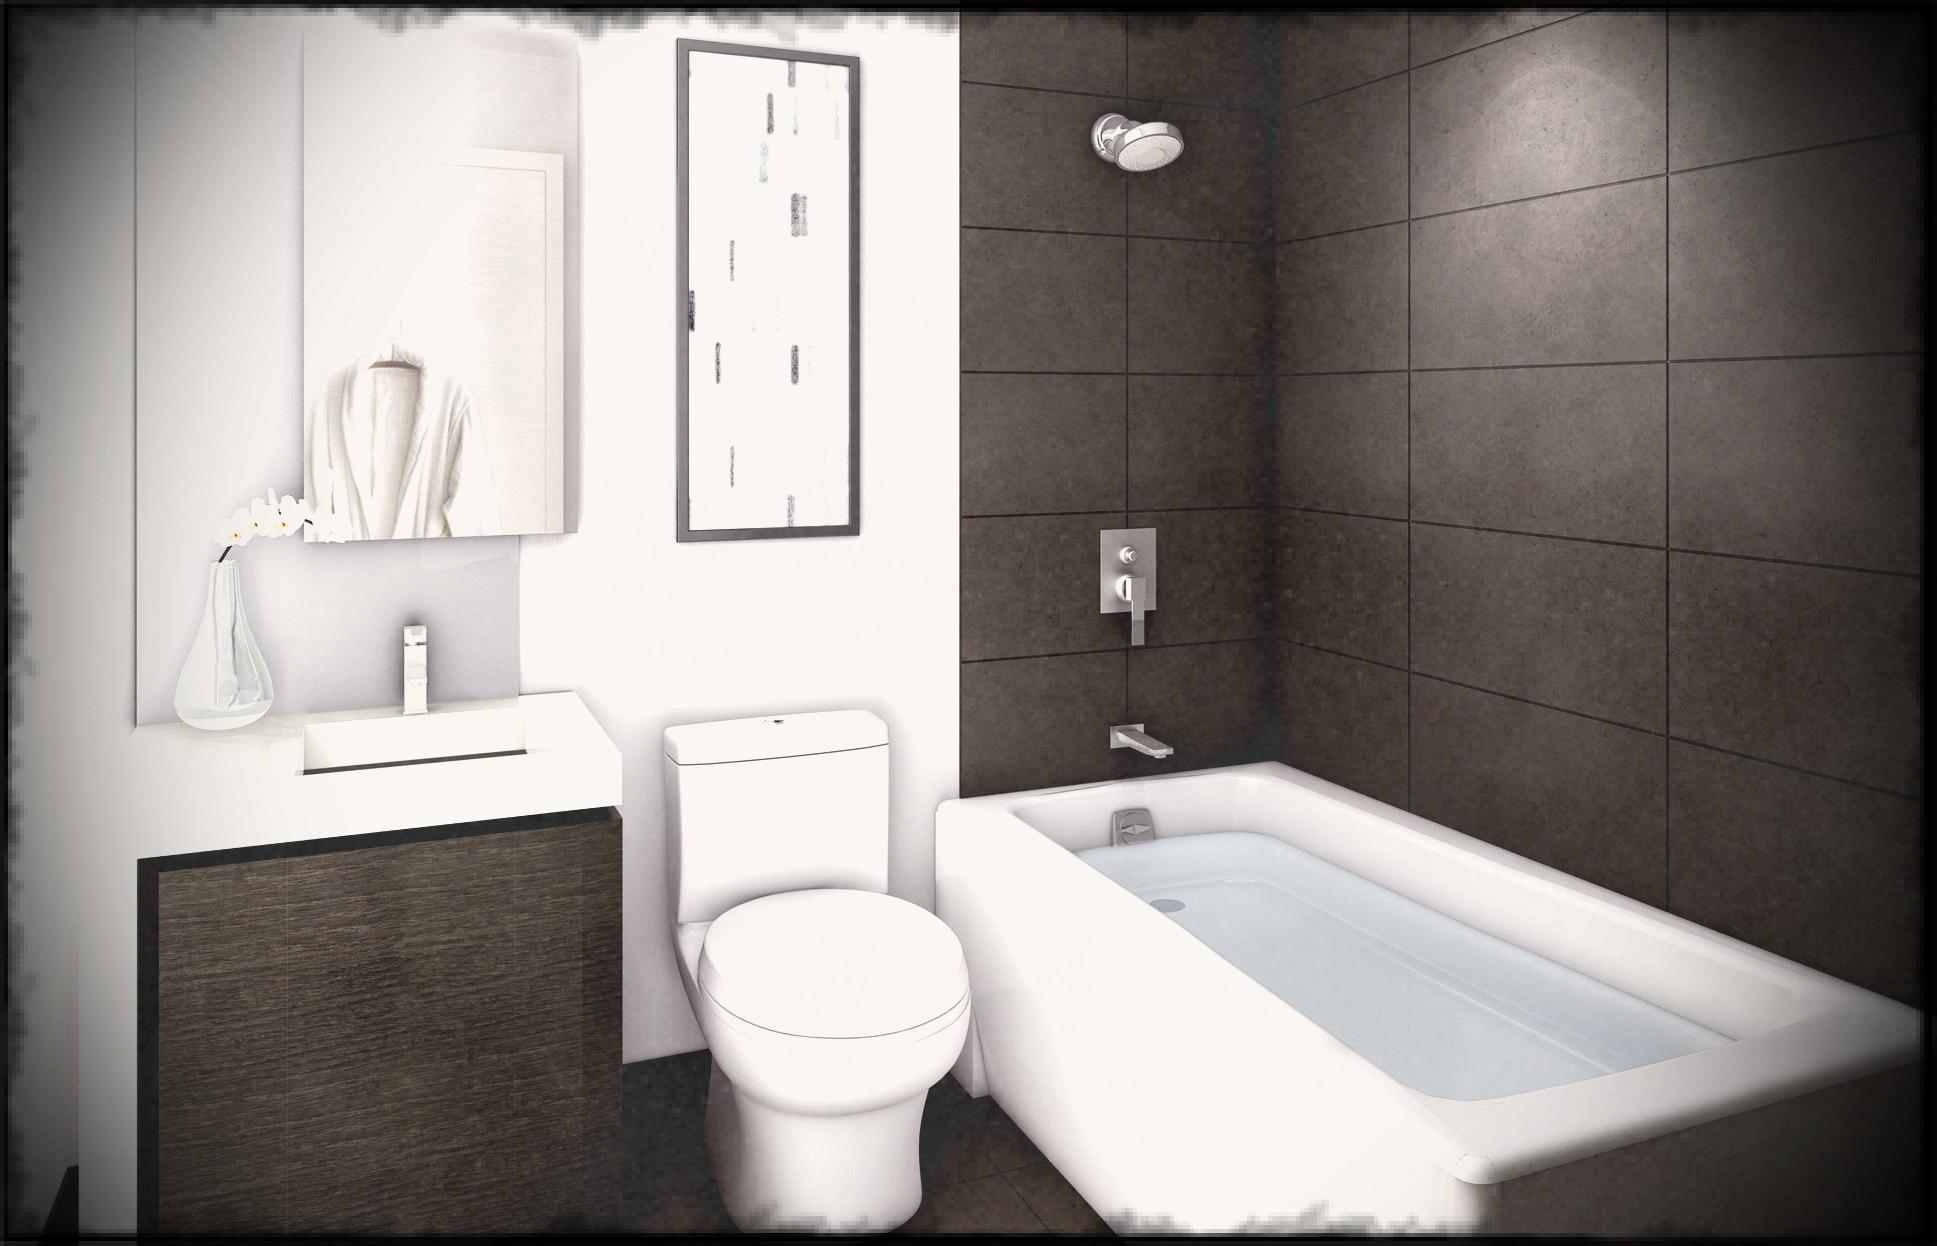 Minosa Bathroom ROG_13 Modern Bathroom Design Espasso Modern Bathroom  Idea With White Bathtup Also Toilet  ...